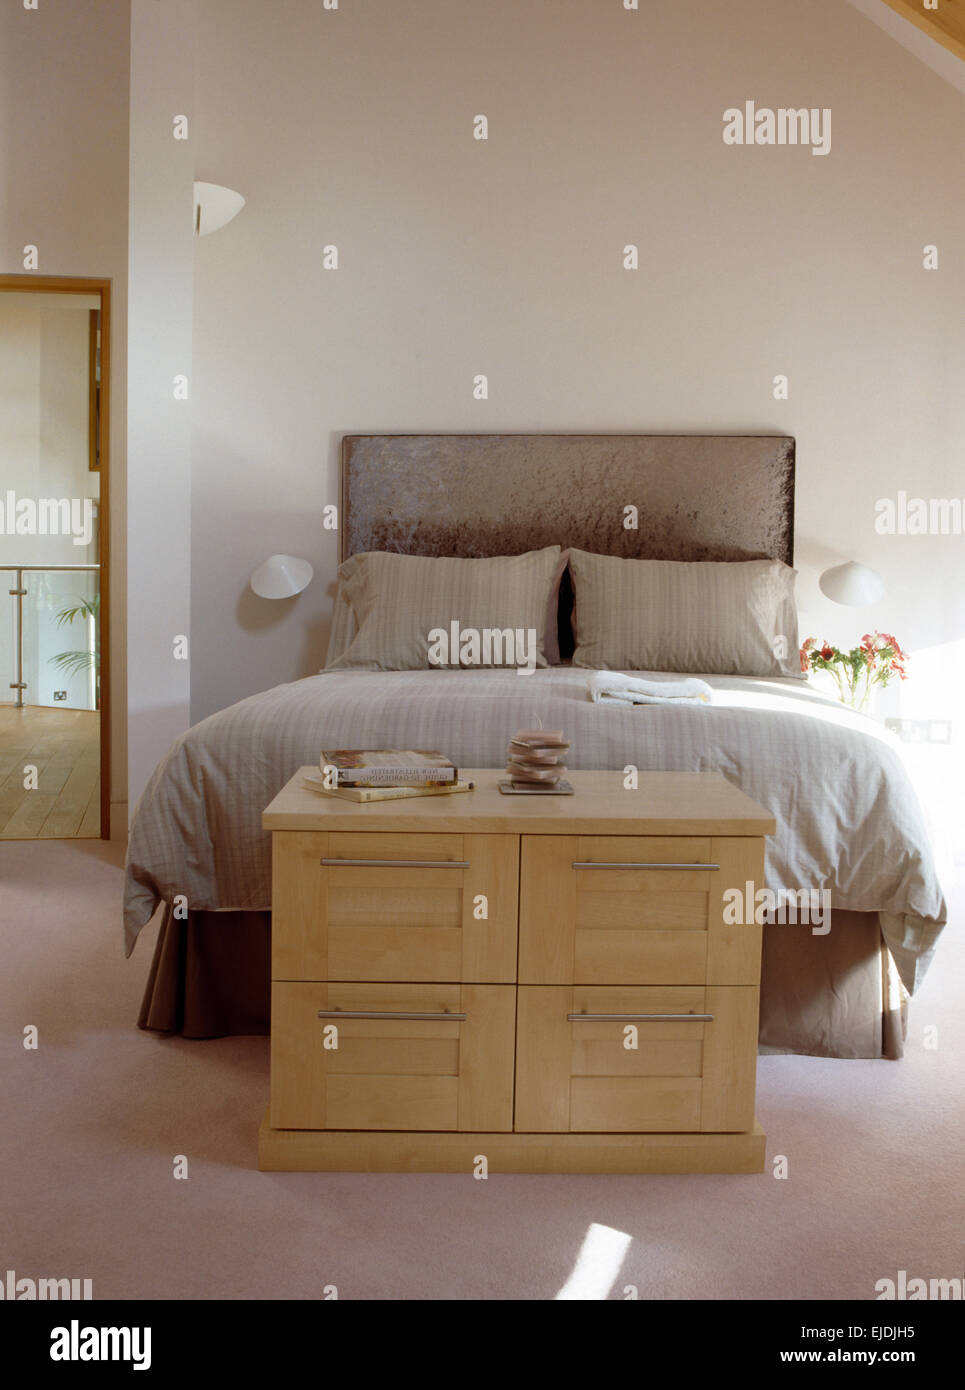 interiors country bedrooms domestic stockfotos interiors. Black Bedroom Furniture Sets. Home Design Ideas